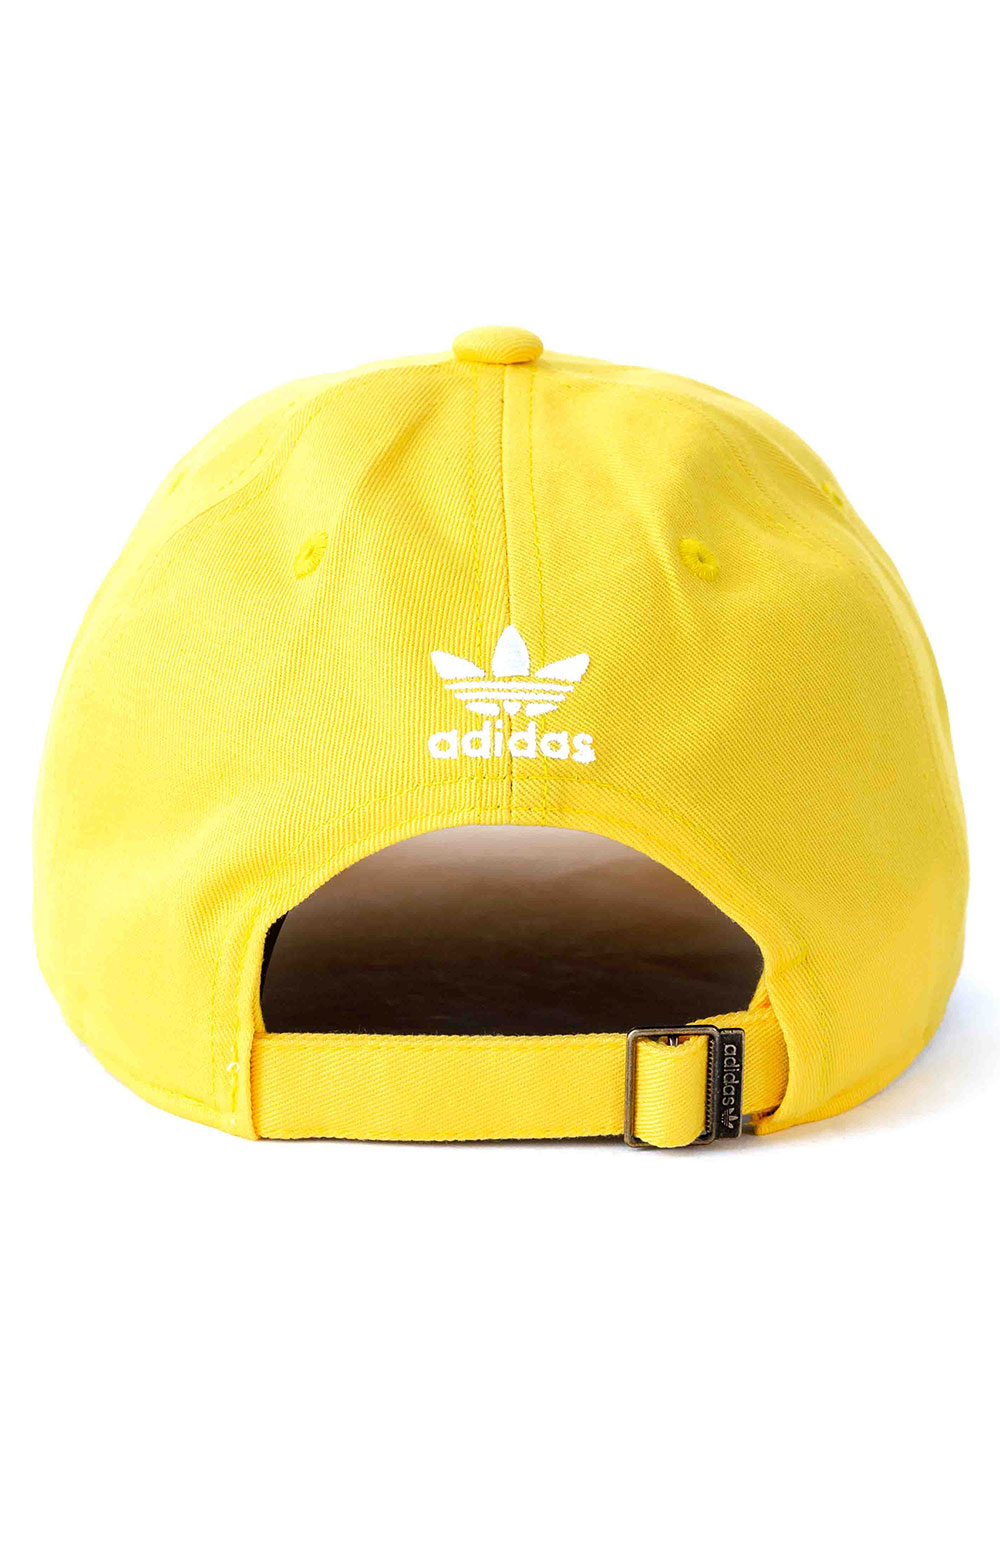 Originals Relaxed Strap-Back Hat - Yellow 3